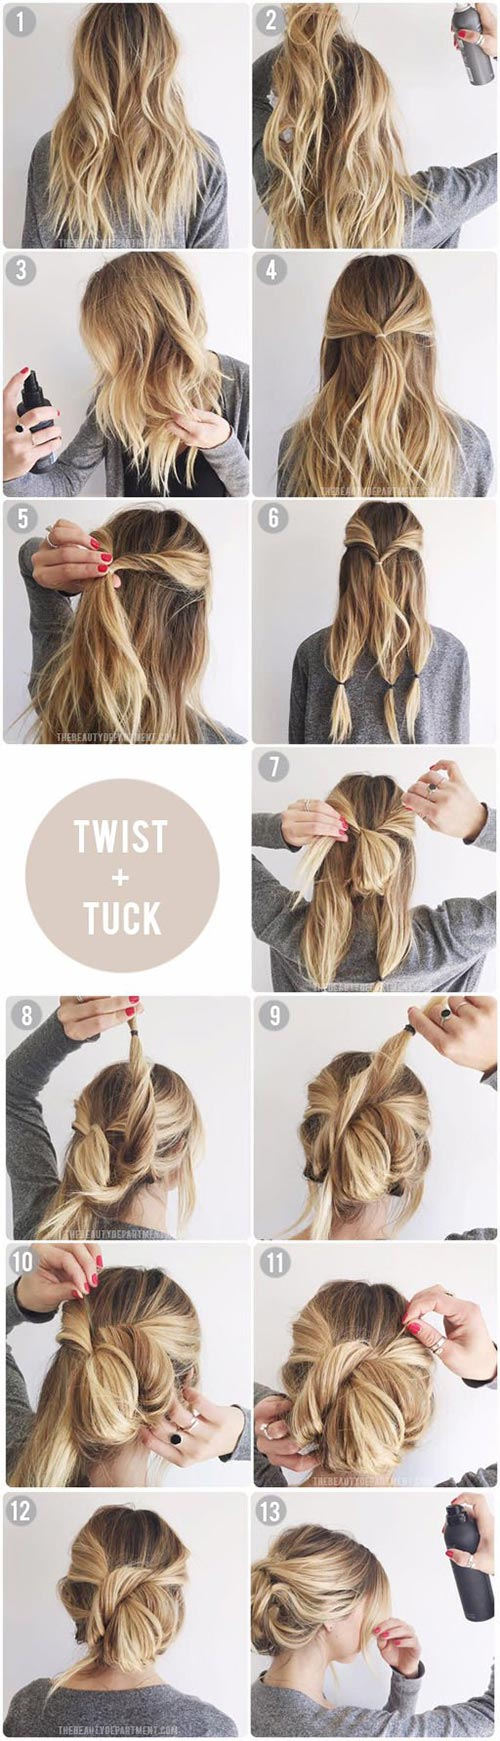 Messy hairstyles with twisted bun